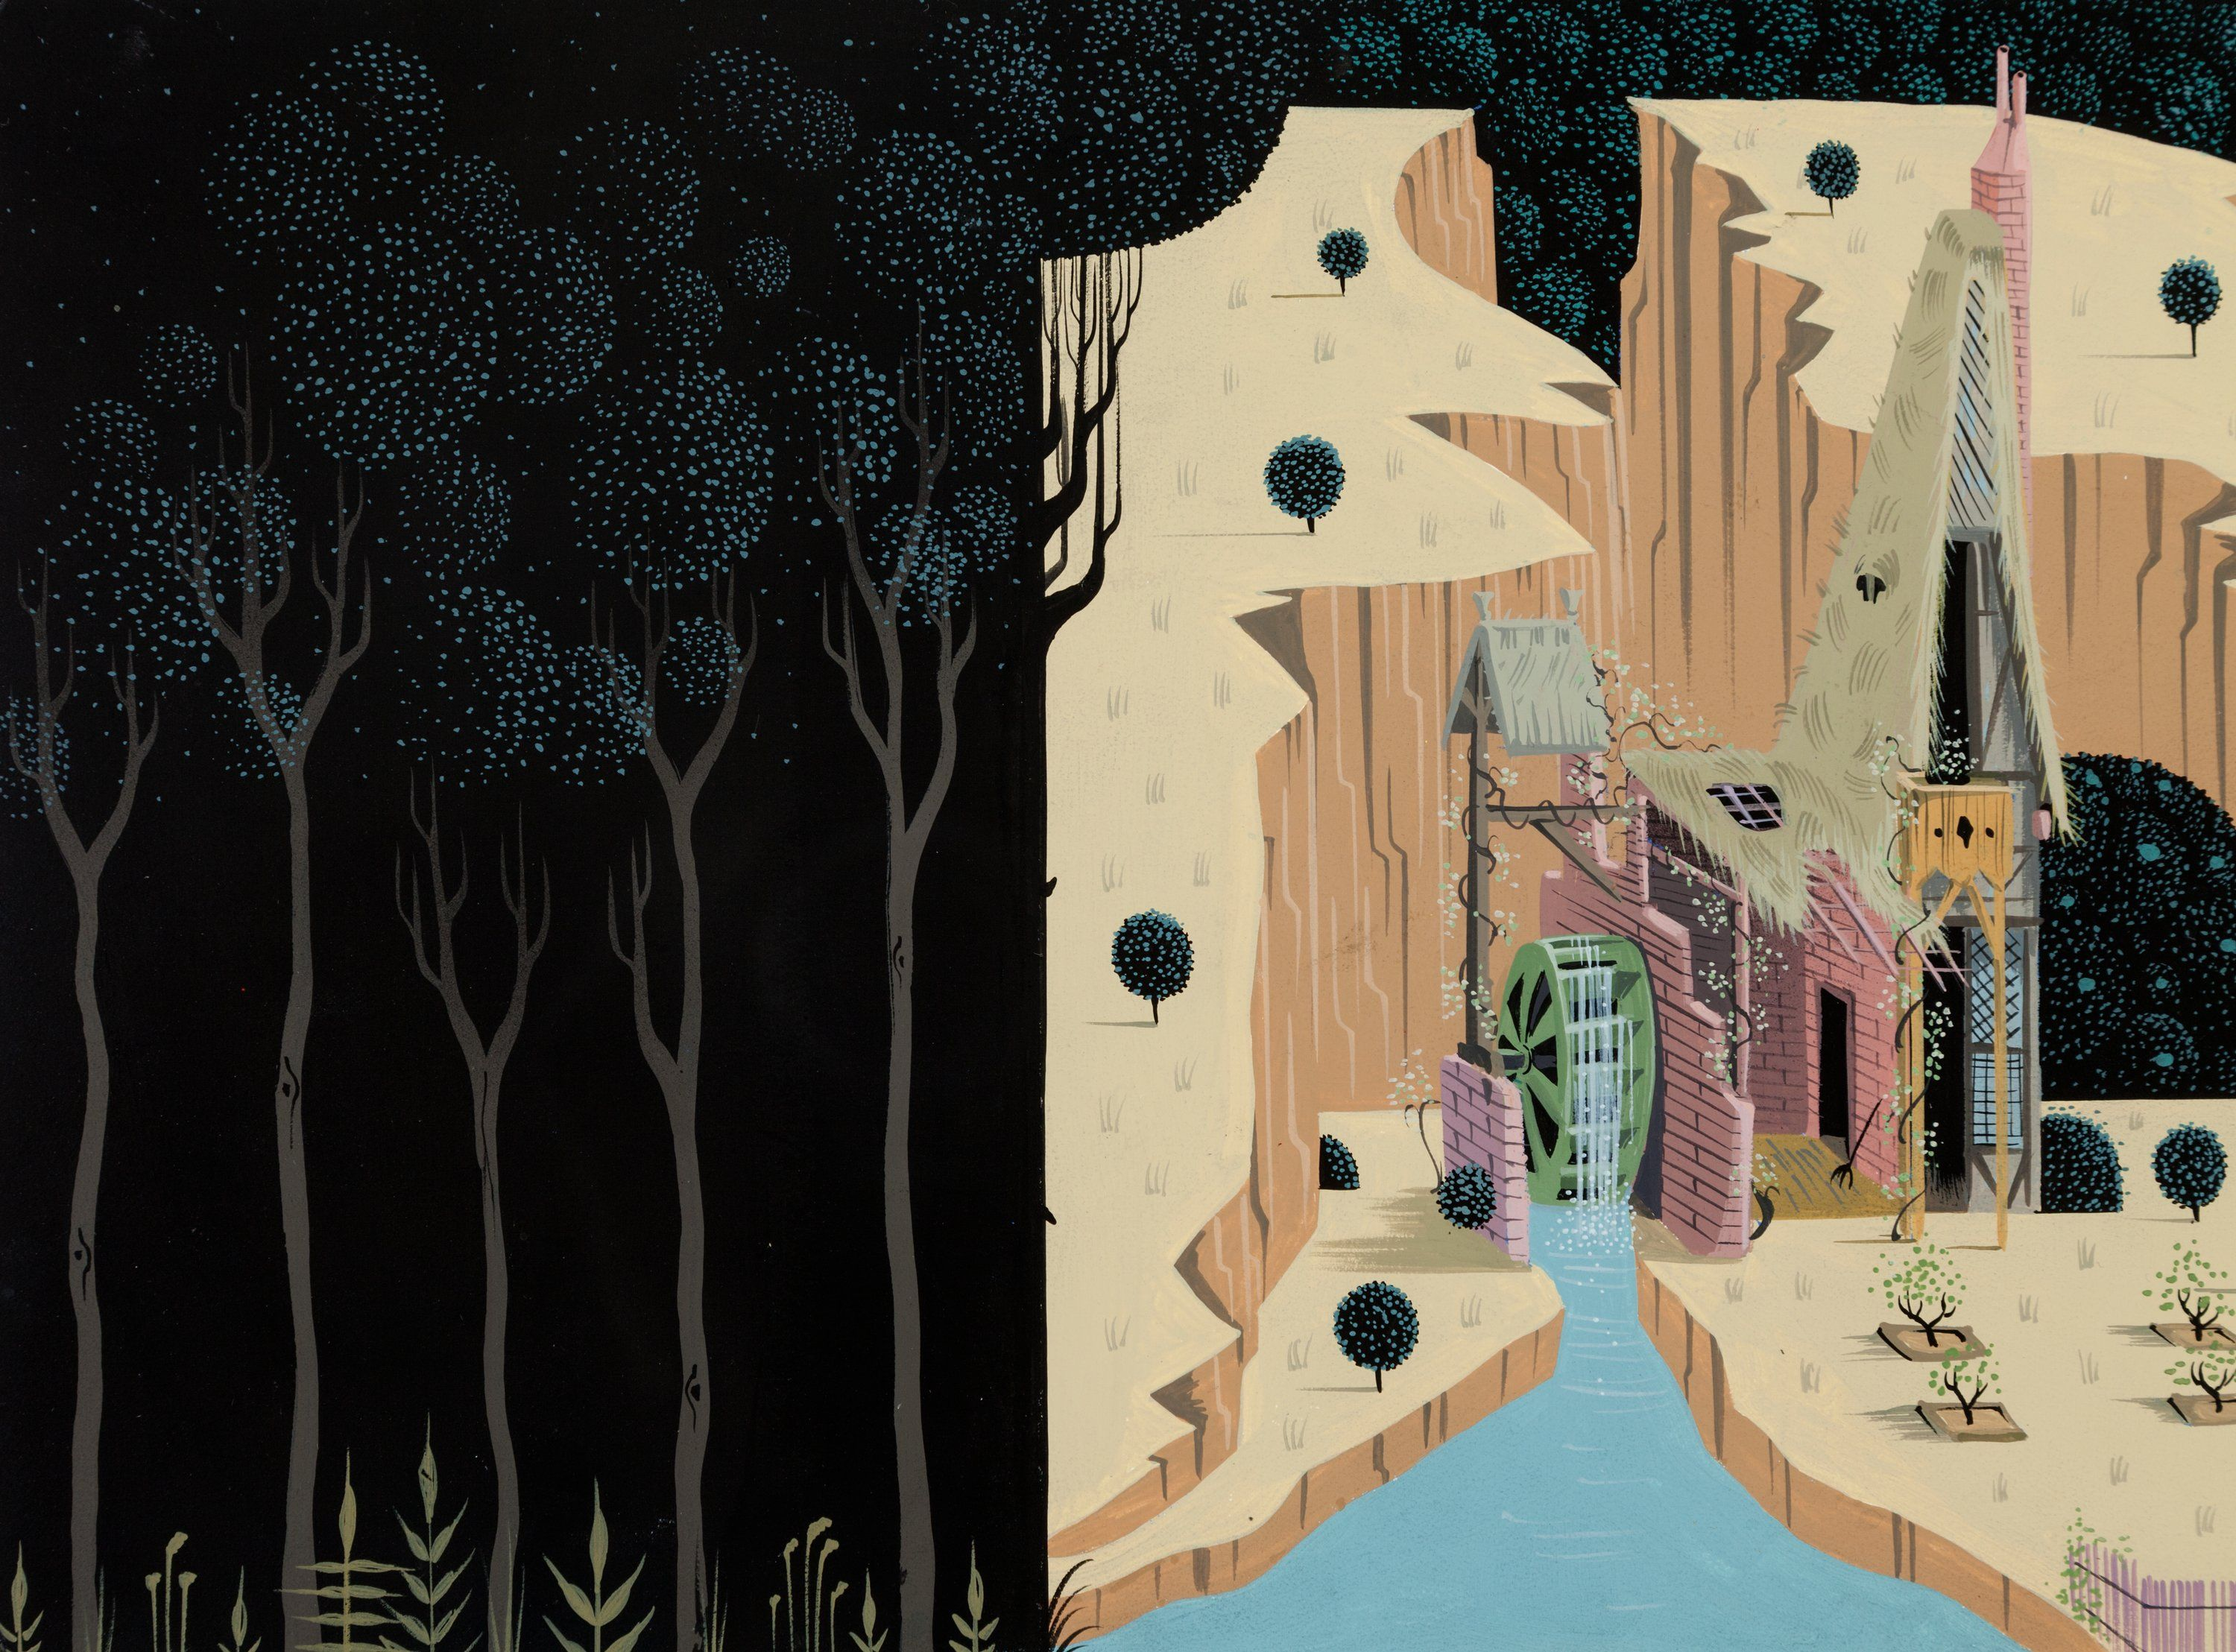 Eyvind Earle Sleeping Beauty Briar Rose And Woodcutter S Cottage Concept Painting Walt Disney 1959 Disney Sleeping Beauty Briar Rose Art